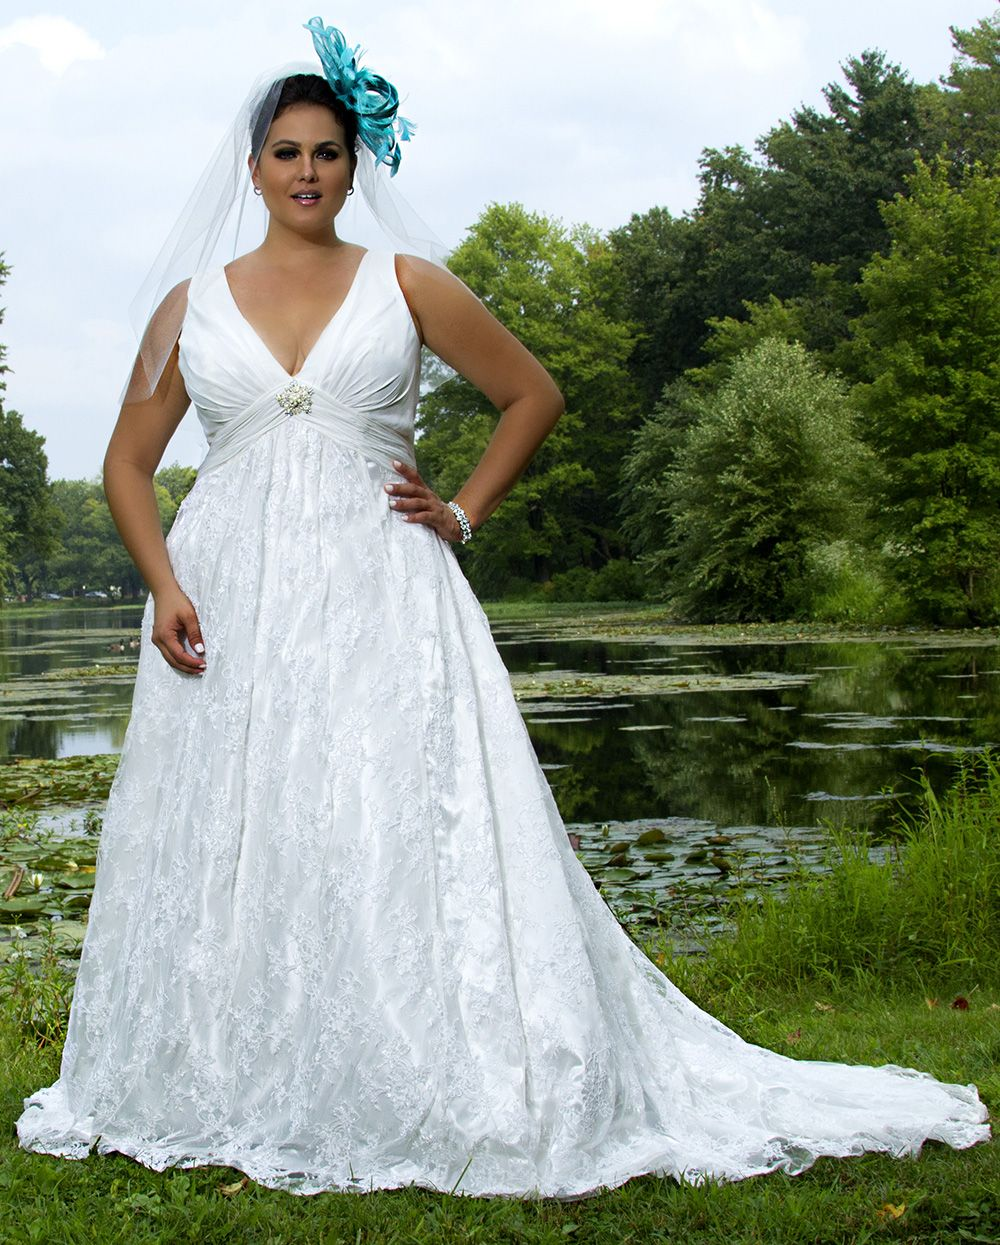 Sydney plus size wedding dresses - Five Fab Plus Size Destination Wedding Dresses Sydney S Closet